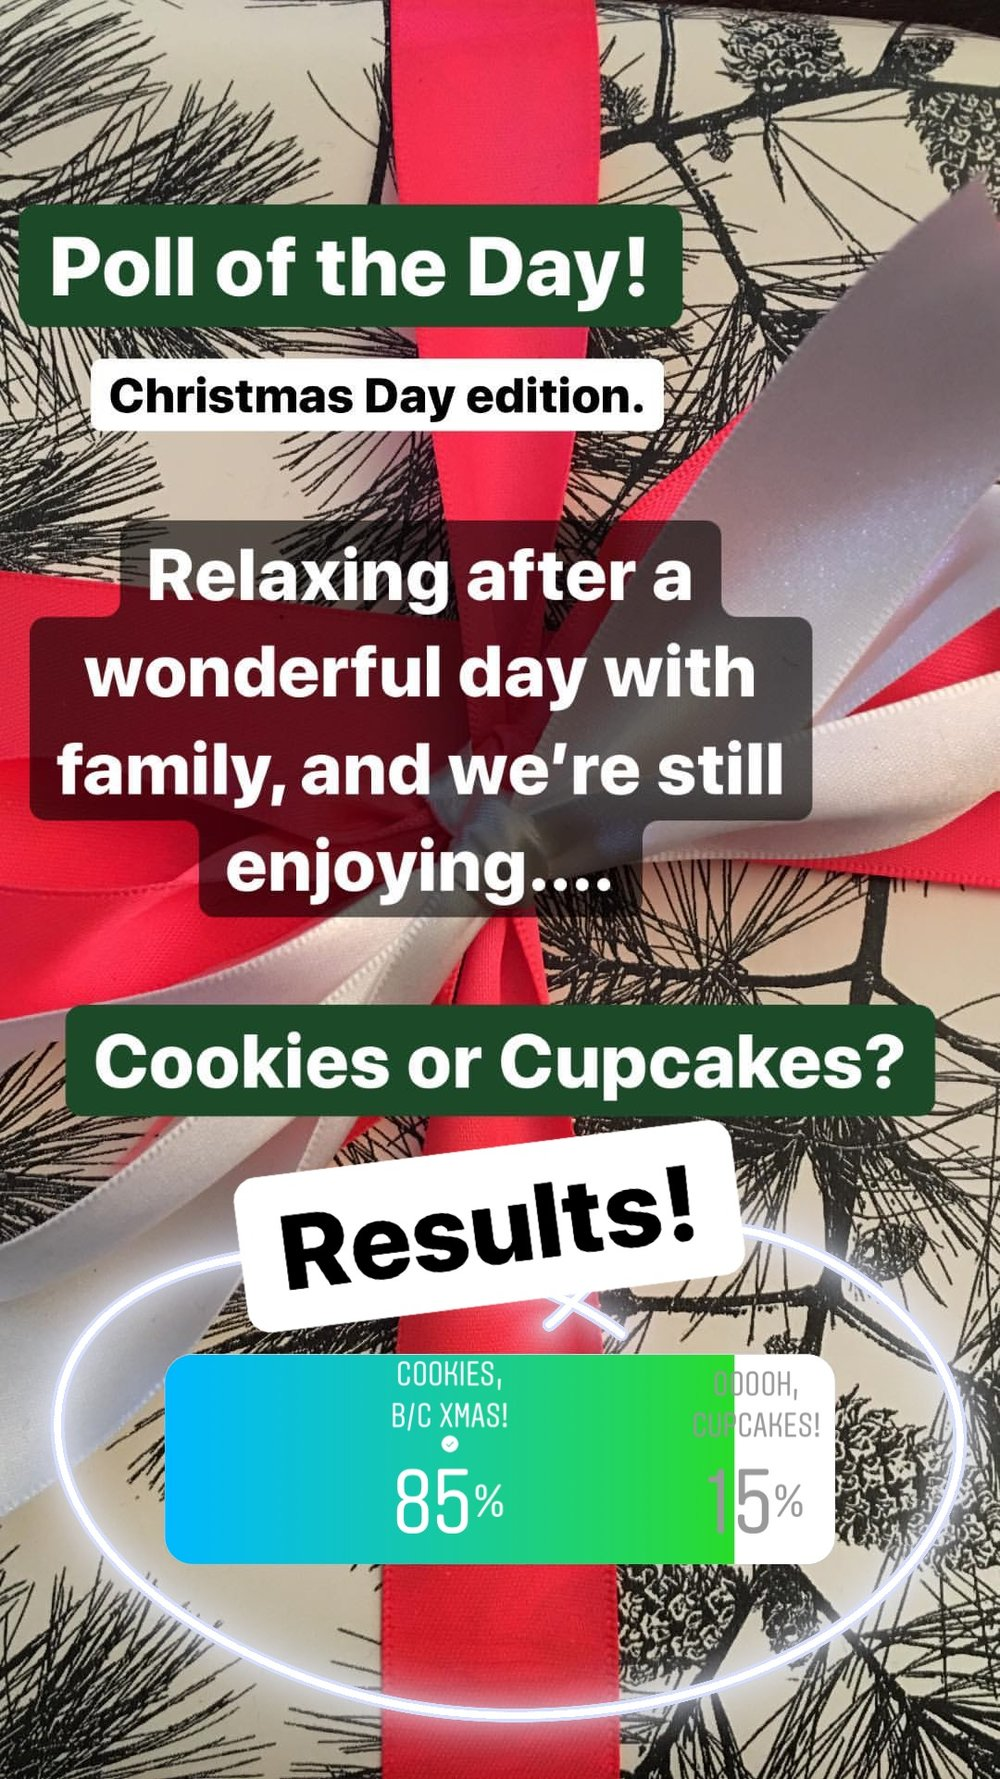 No surprise here! Christmas cookies are a clear standout winner, and yes, I made some delicious ones this year. However, at the time of this poll, I was having a few gluten free cupcakes - minis Baked By Melissa - so I thought I'd test the crowd. I definitely think cookies are the holiday favorite, of course, but on the offchance you're in the mood for a new, small treat, then Baked By Melissa make some great gluten free cupcakes that are one-bite size and perfect for a late night holiday snack. :)